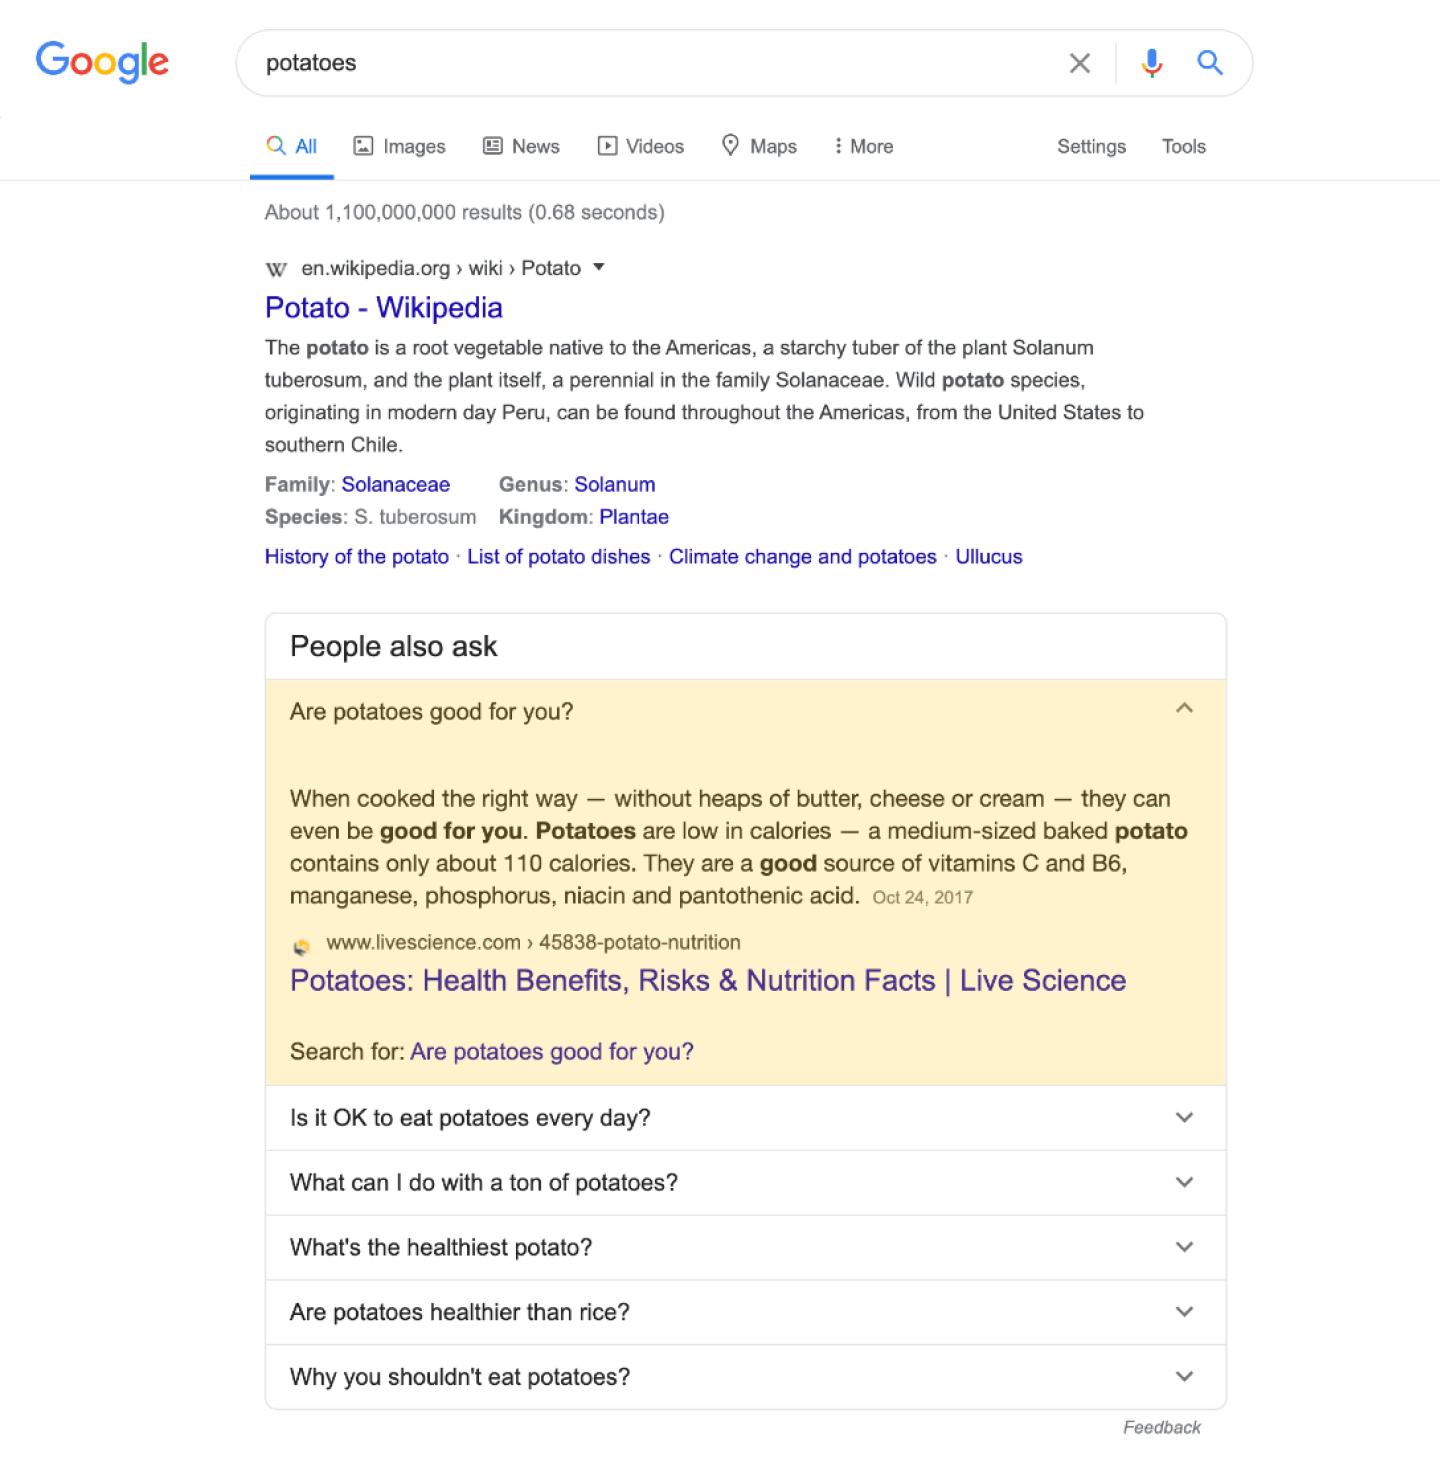 Screenshot with People Also Ask results in Google highlighting showing how extra questions are added when clicking on a result.